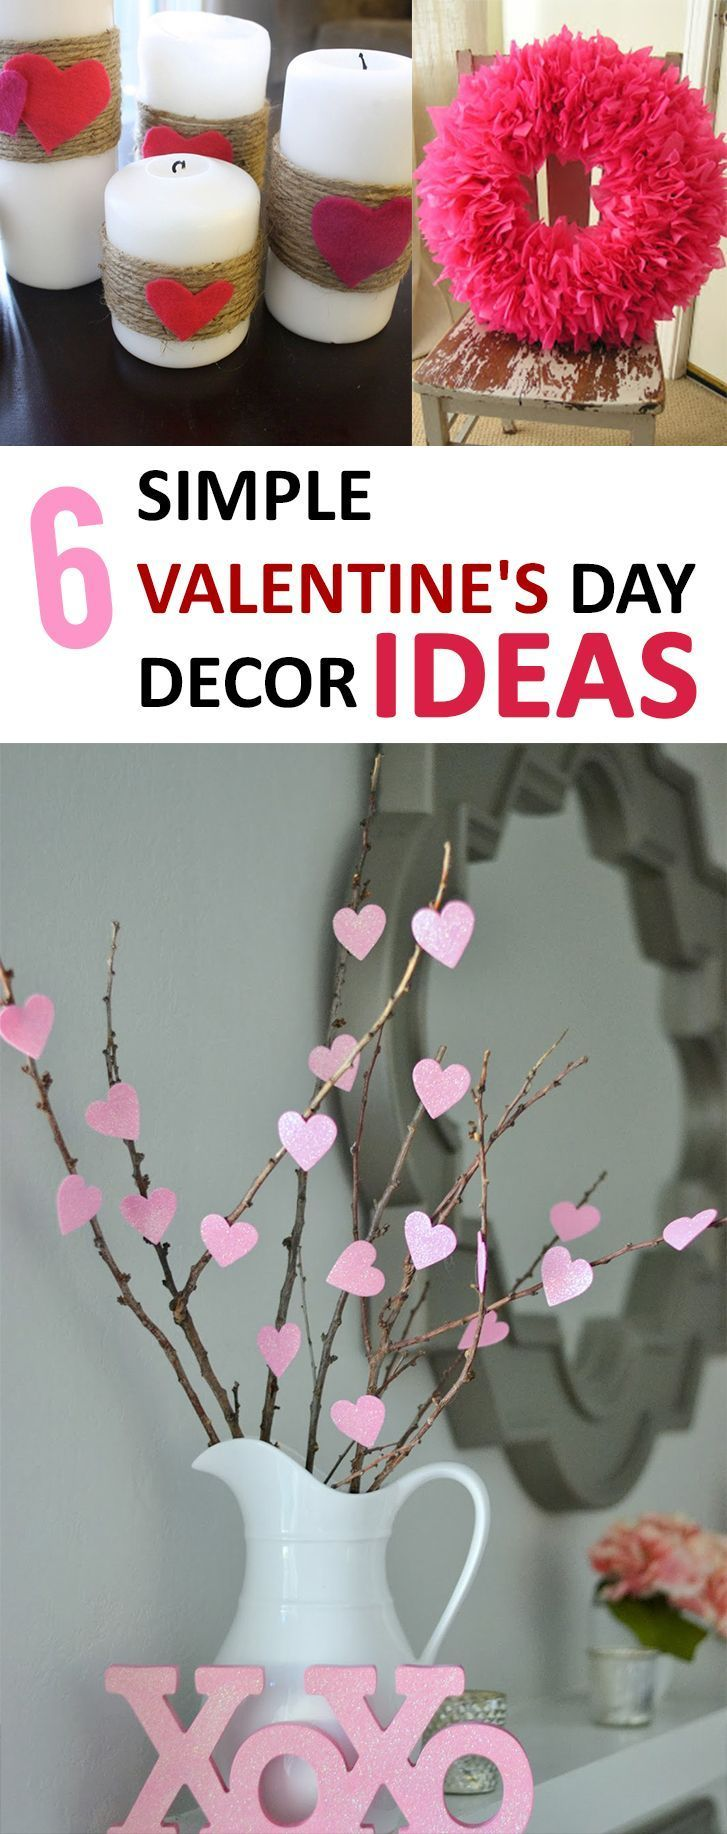 6 Simple Valentine's Day Decor Ideas. A great way to add a little extra love to your home!